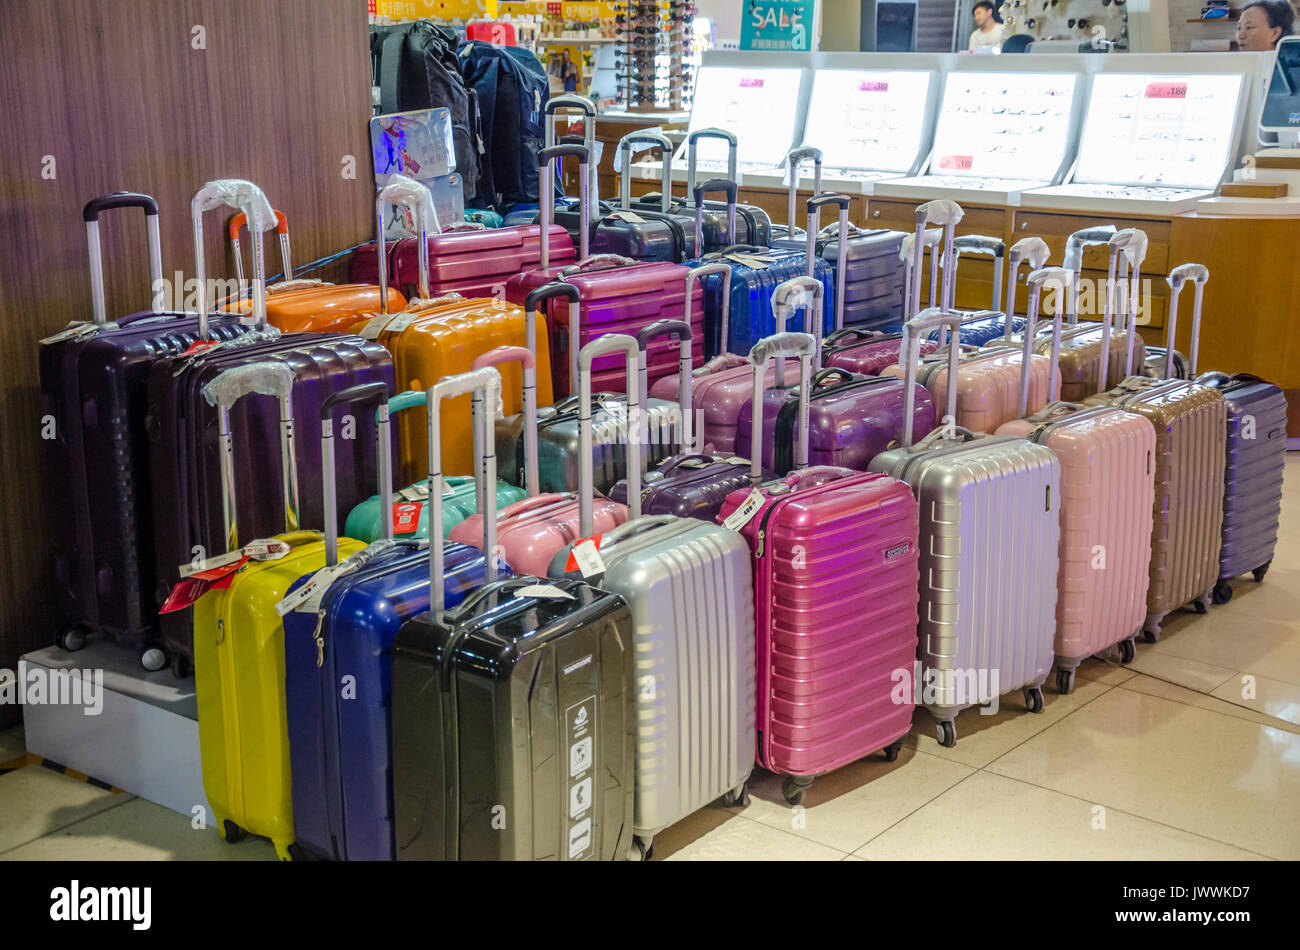 Suitcase Store Stock Photos & Suitcase Store Stock Images ...